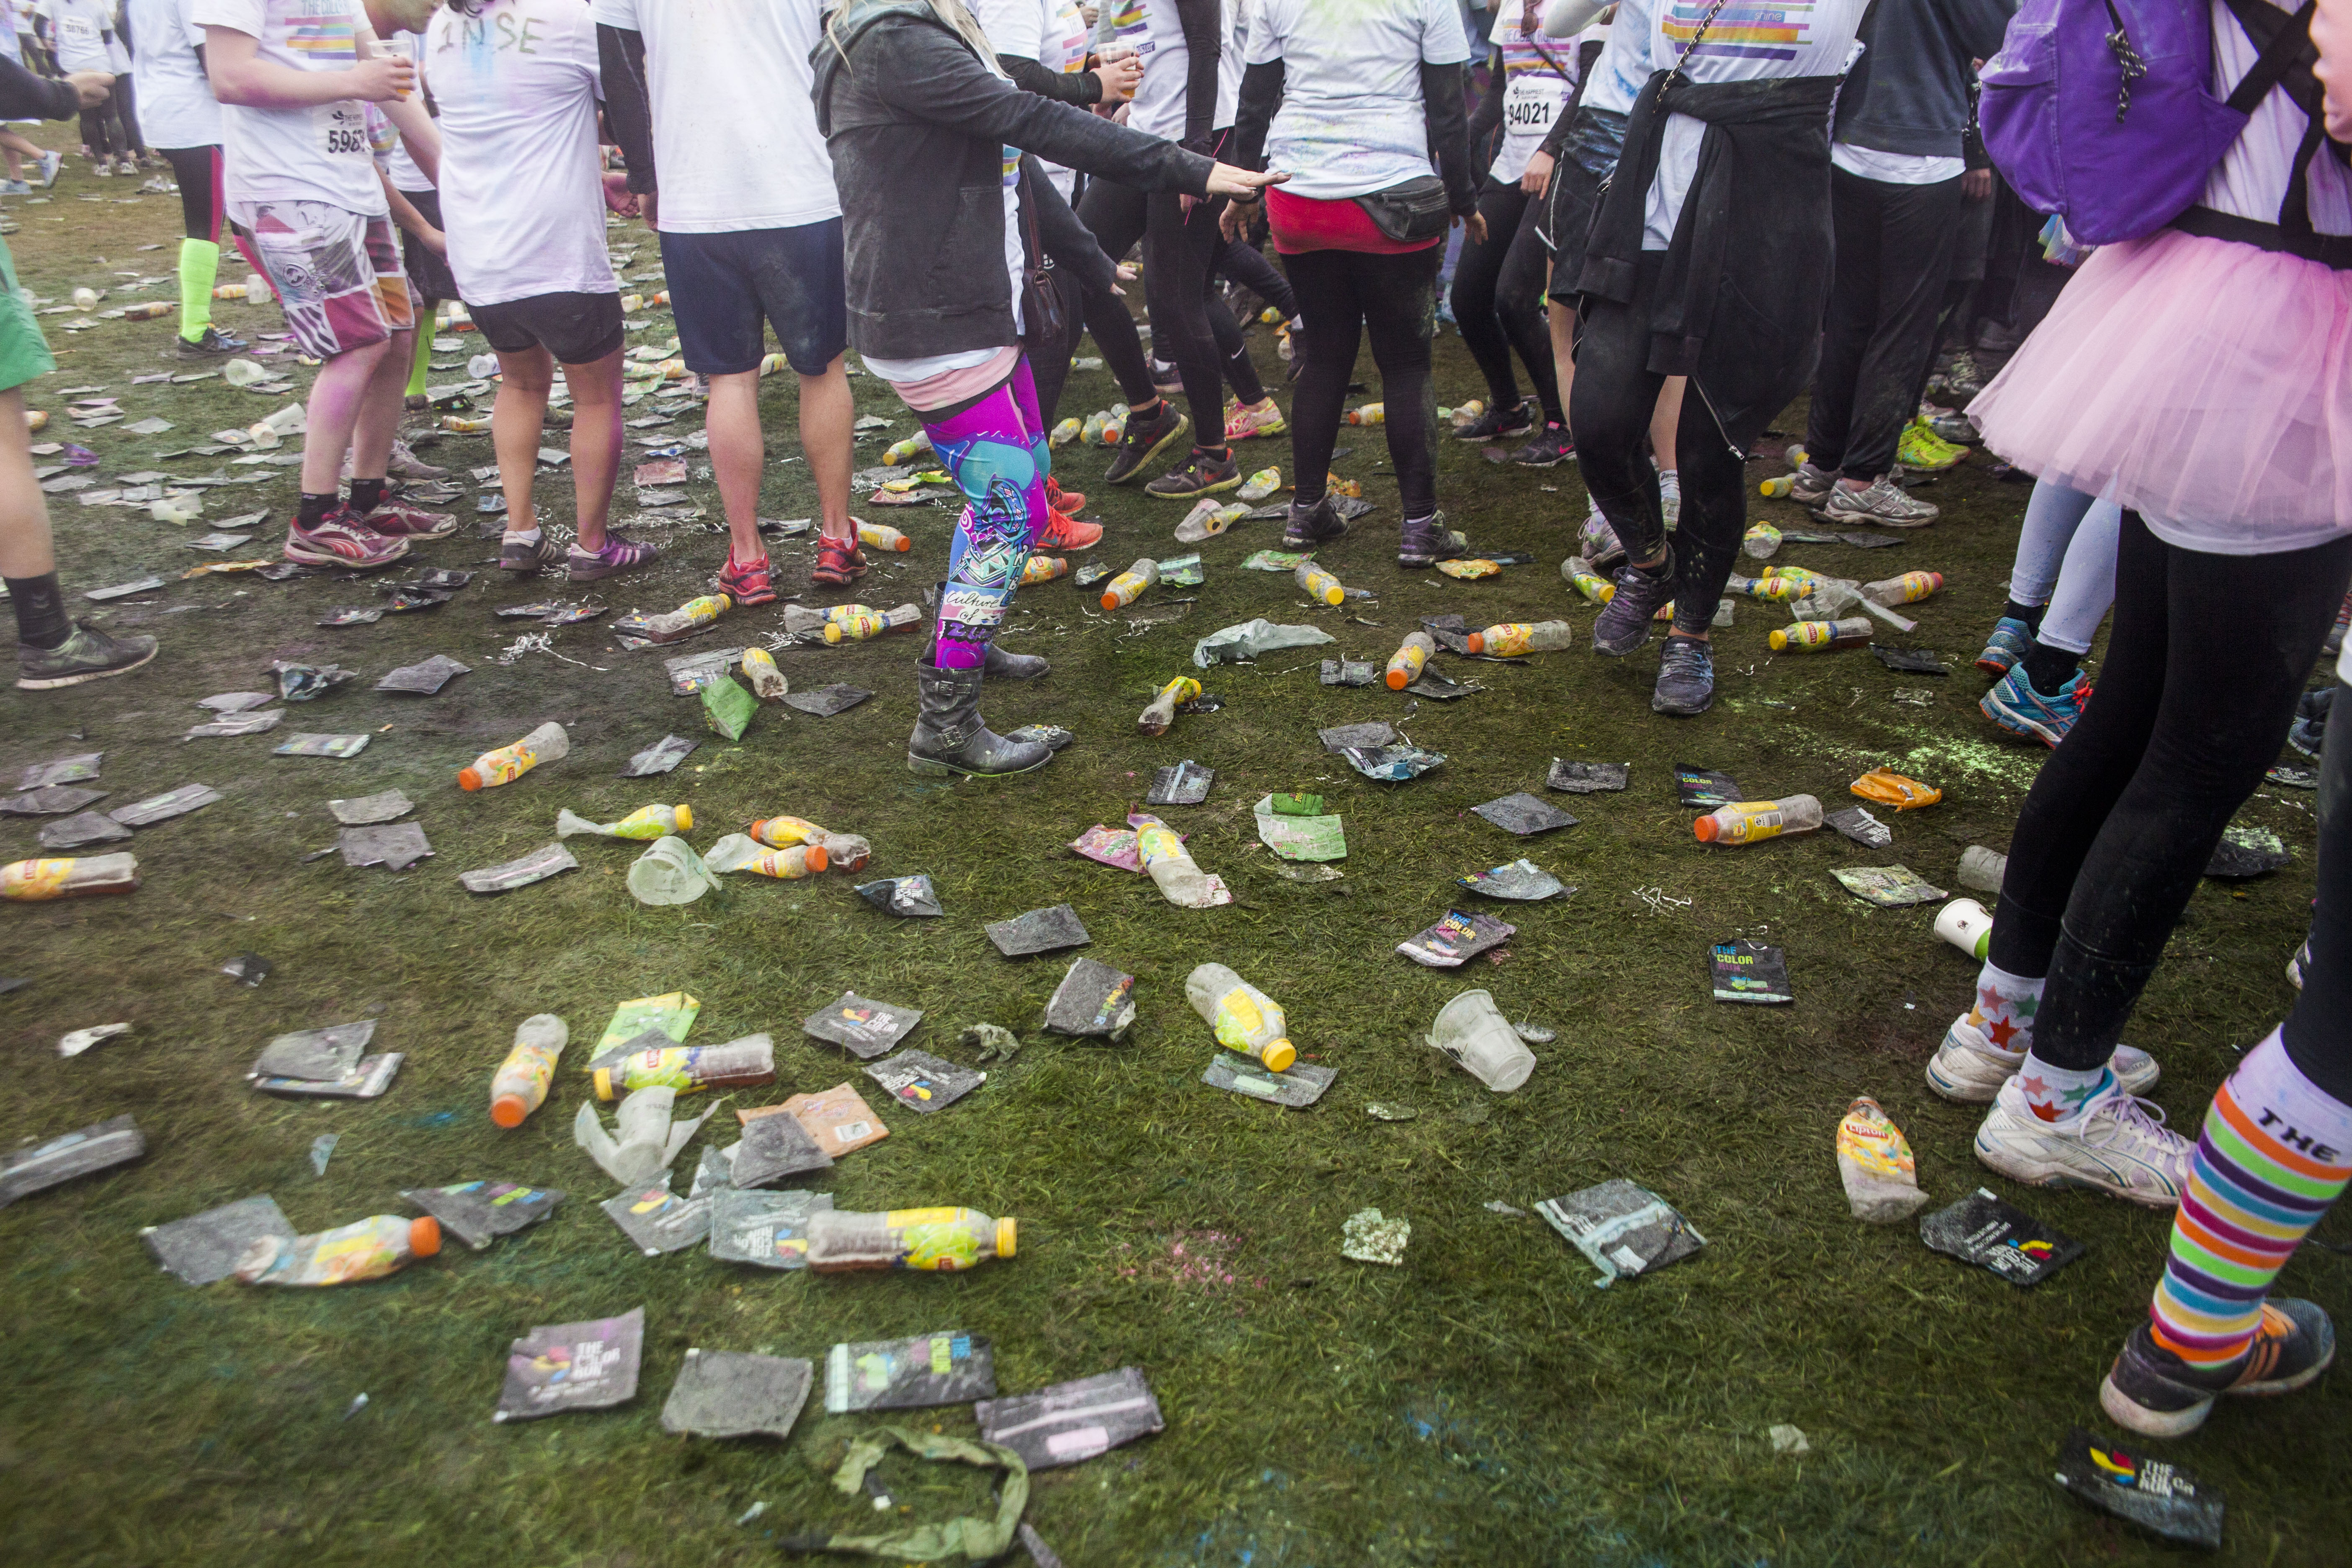 TheColorRun2015_HelenaLundquist_mindre_19